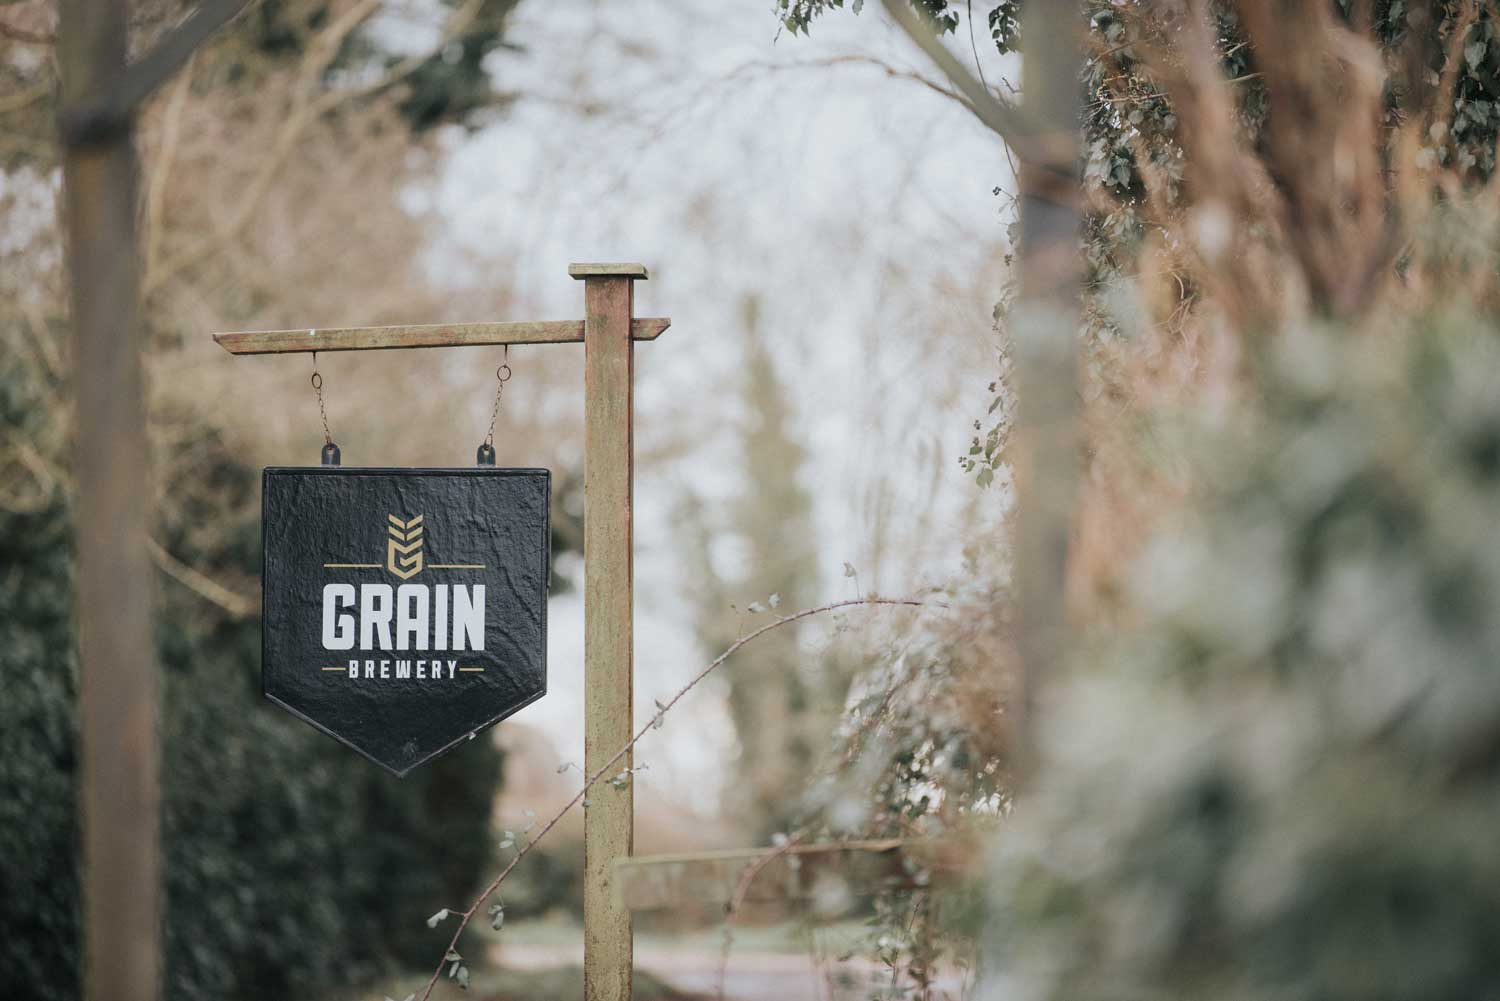 grain-brewery-sign-website-photography.jpg